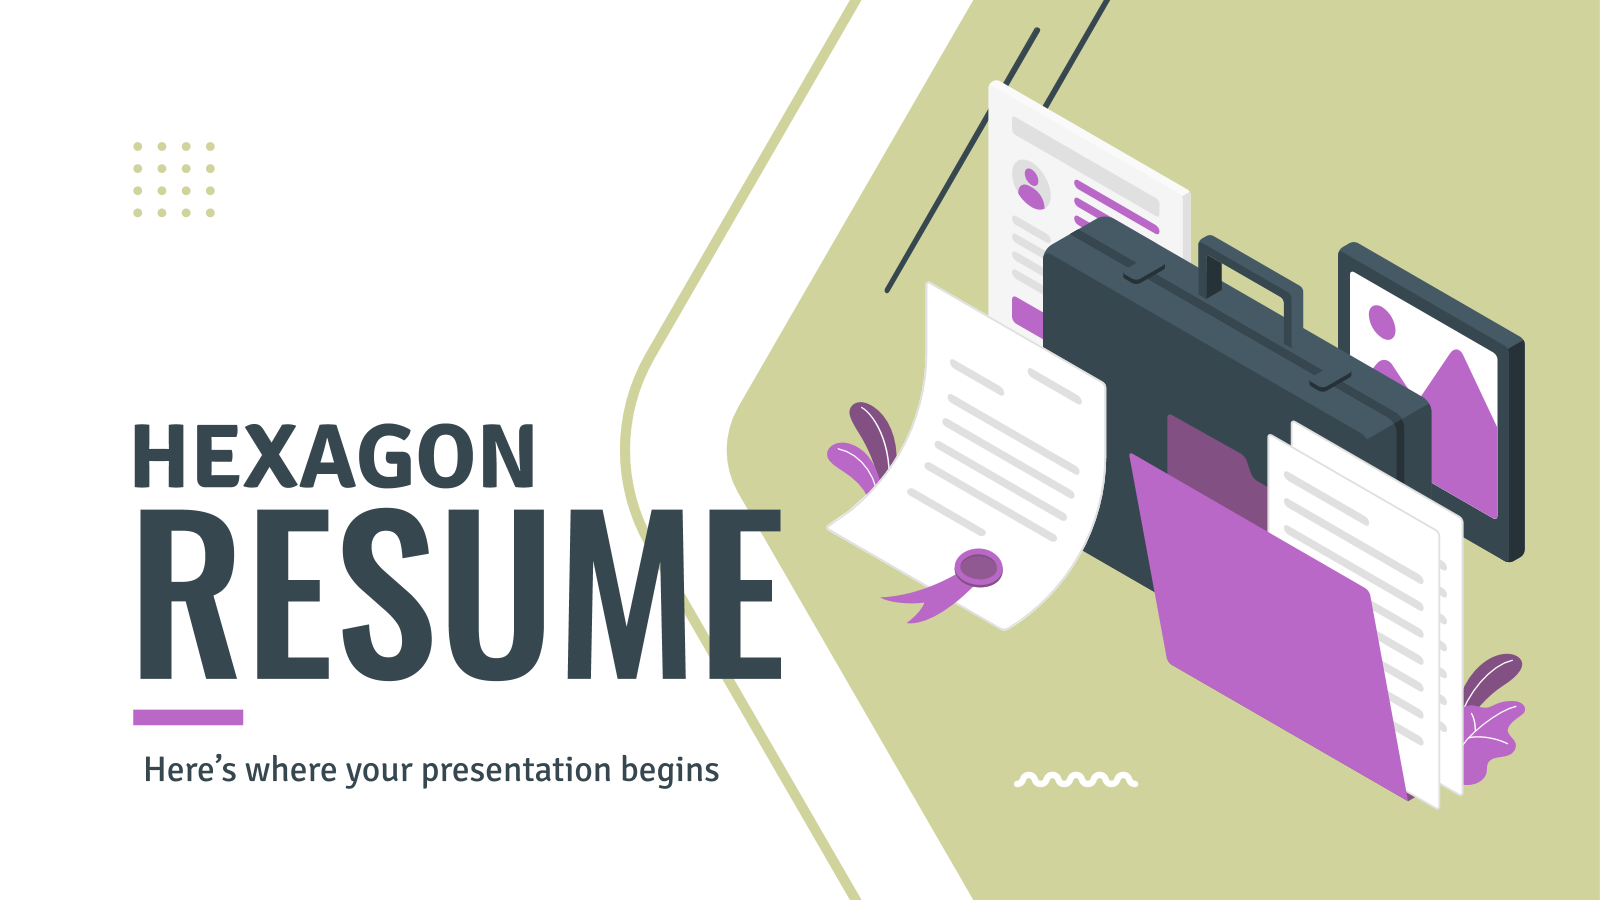 Hexagon Resume presentation template